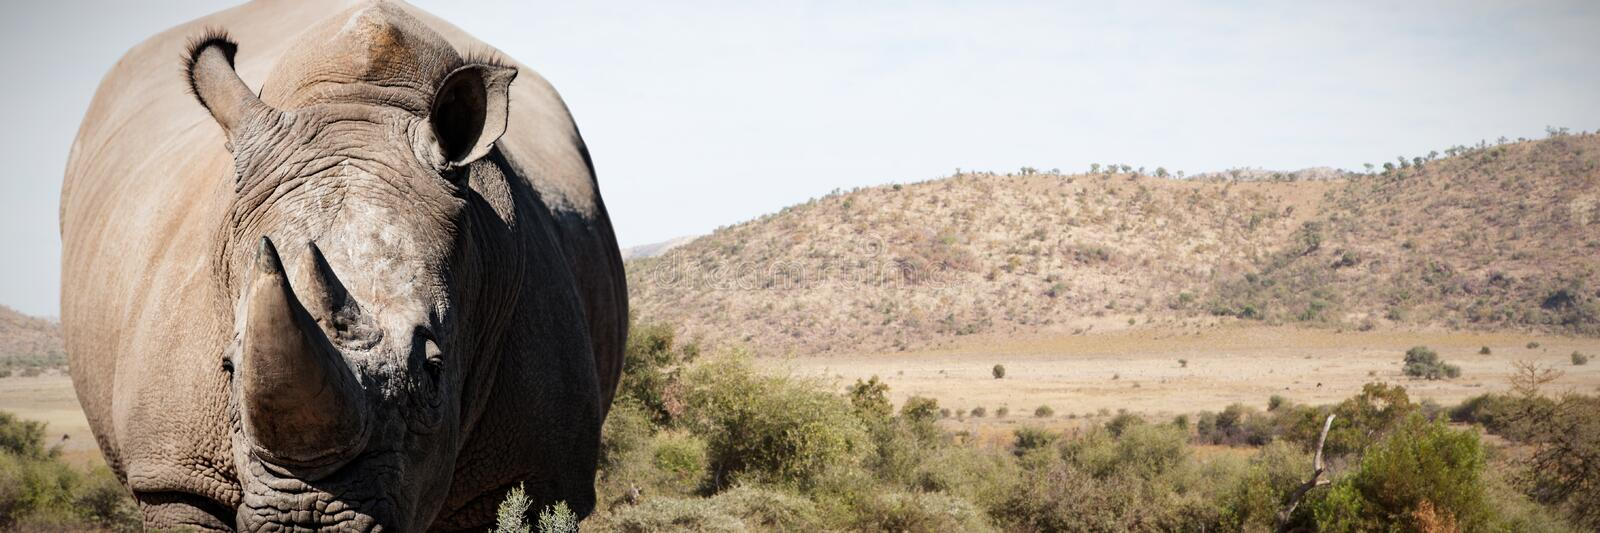 Composite image of rhinoceros standing on a dusty land stock images